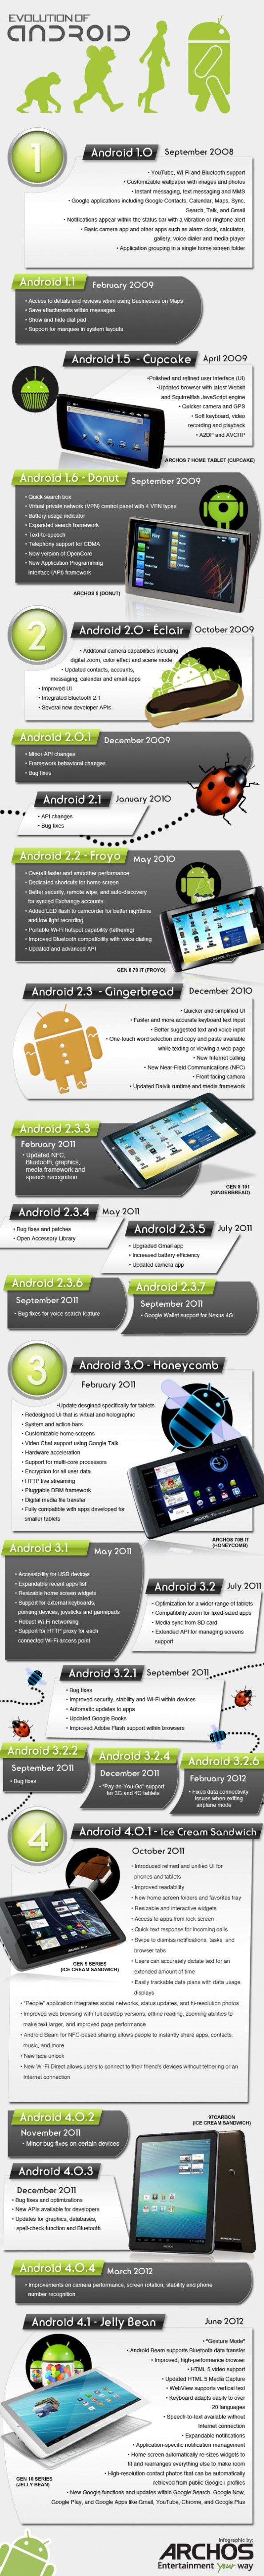 Evolution of Android Infographic